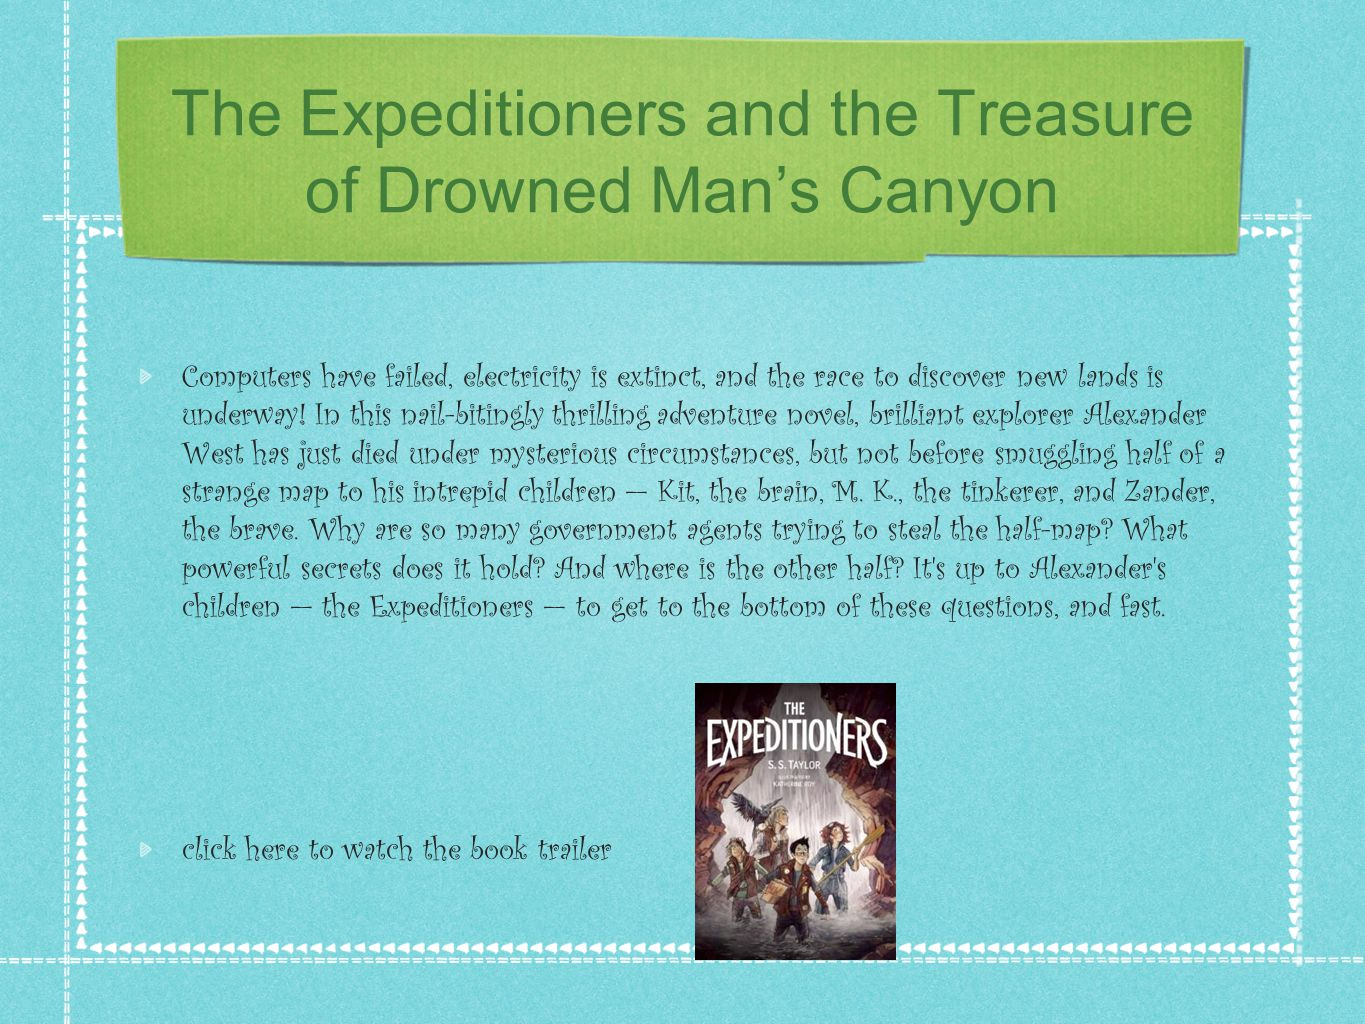 The Expeditioners and the Treasure of Drowned Man's Canyon Computers have failed, electricity is extinct, and the race to discover new lands is underway.